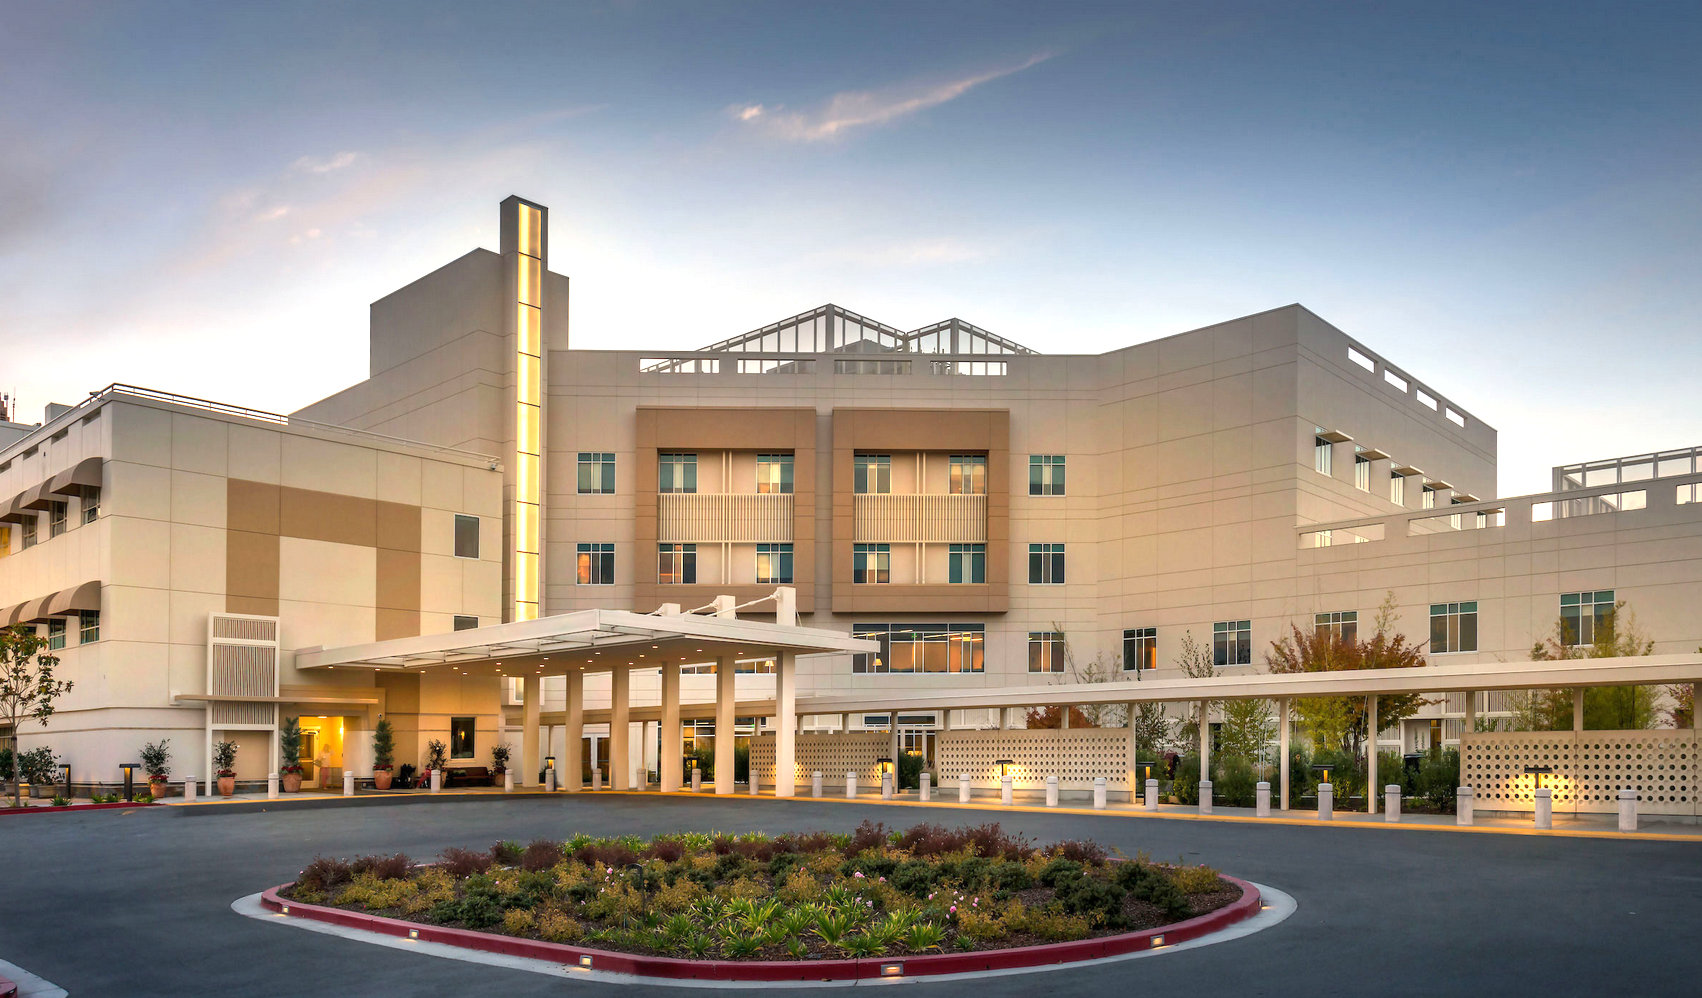 Sequoia Hospital in Redwood City. Photo by Brandt Design Group, which worked on the 2015 rebuild of the facility